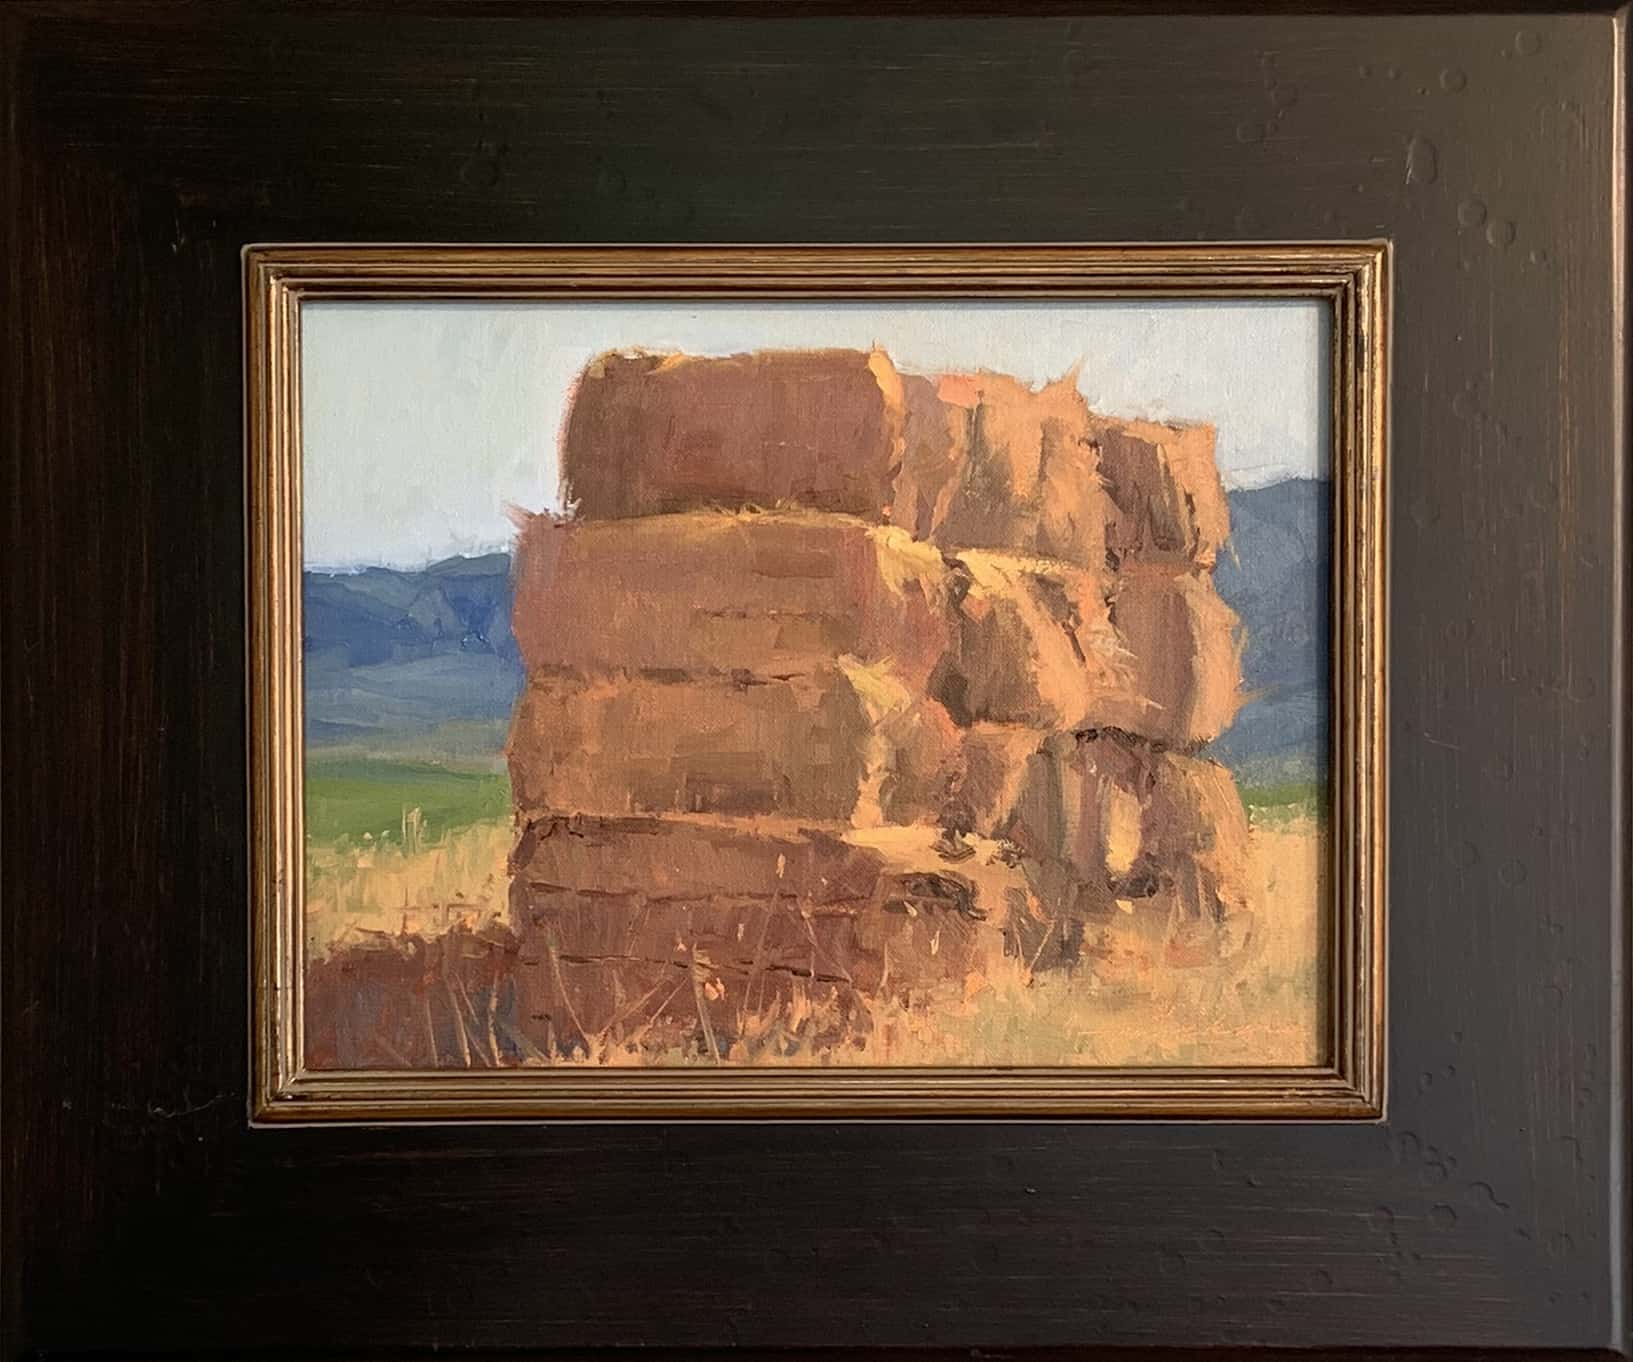 Oil on Linen haystack